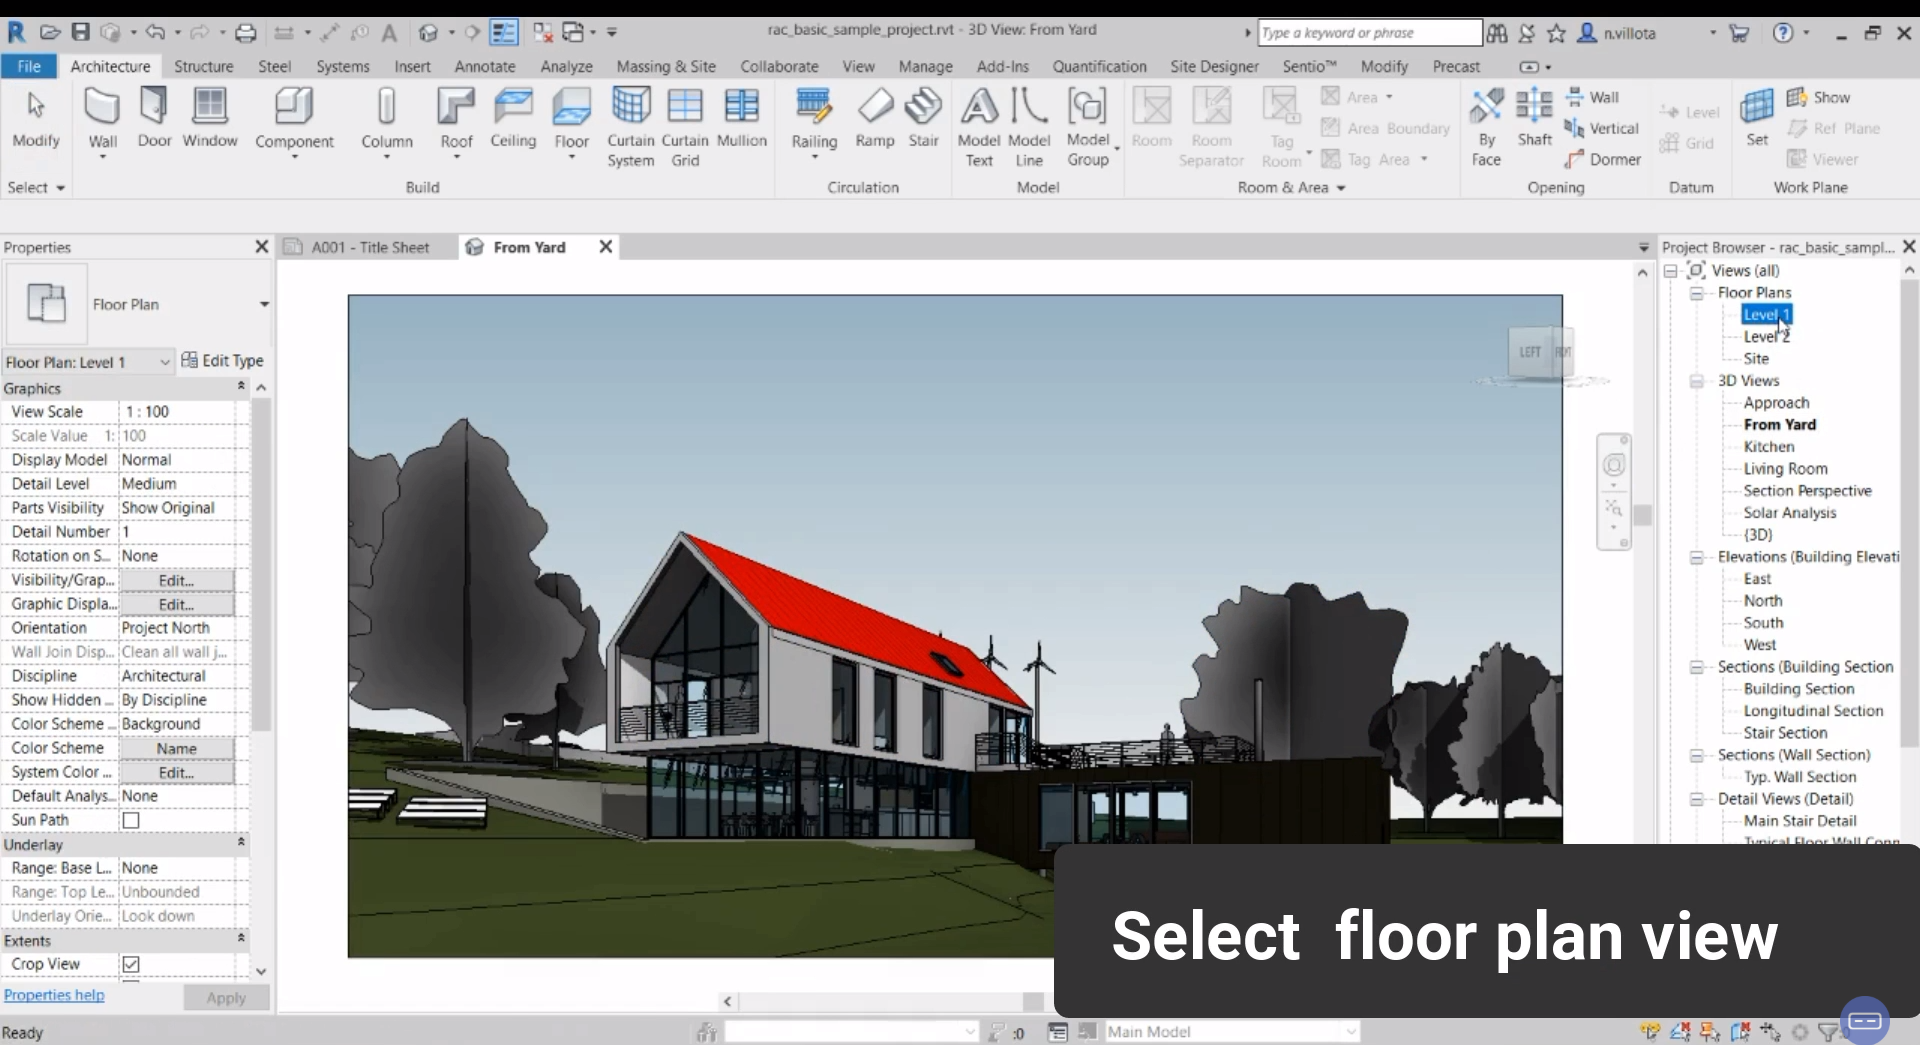 360 images using Autodesk Revit